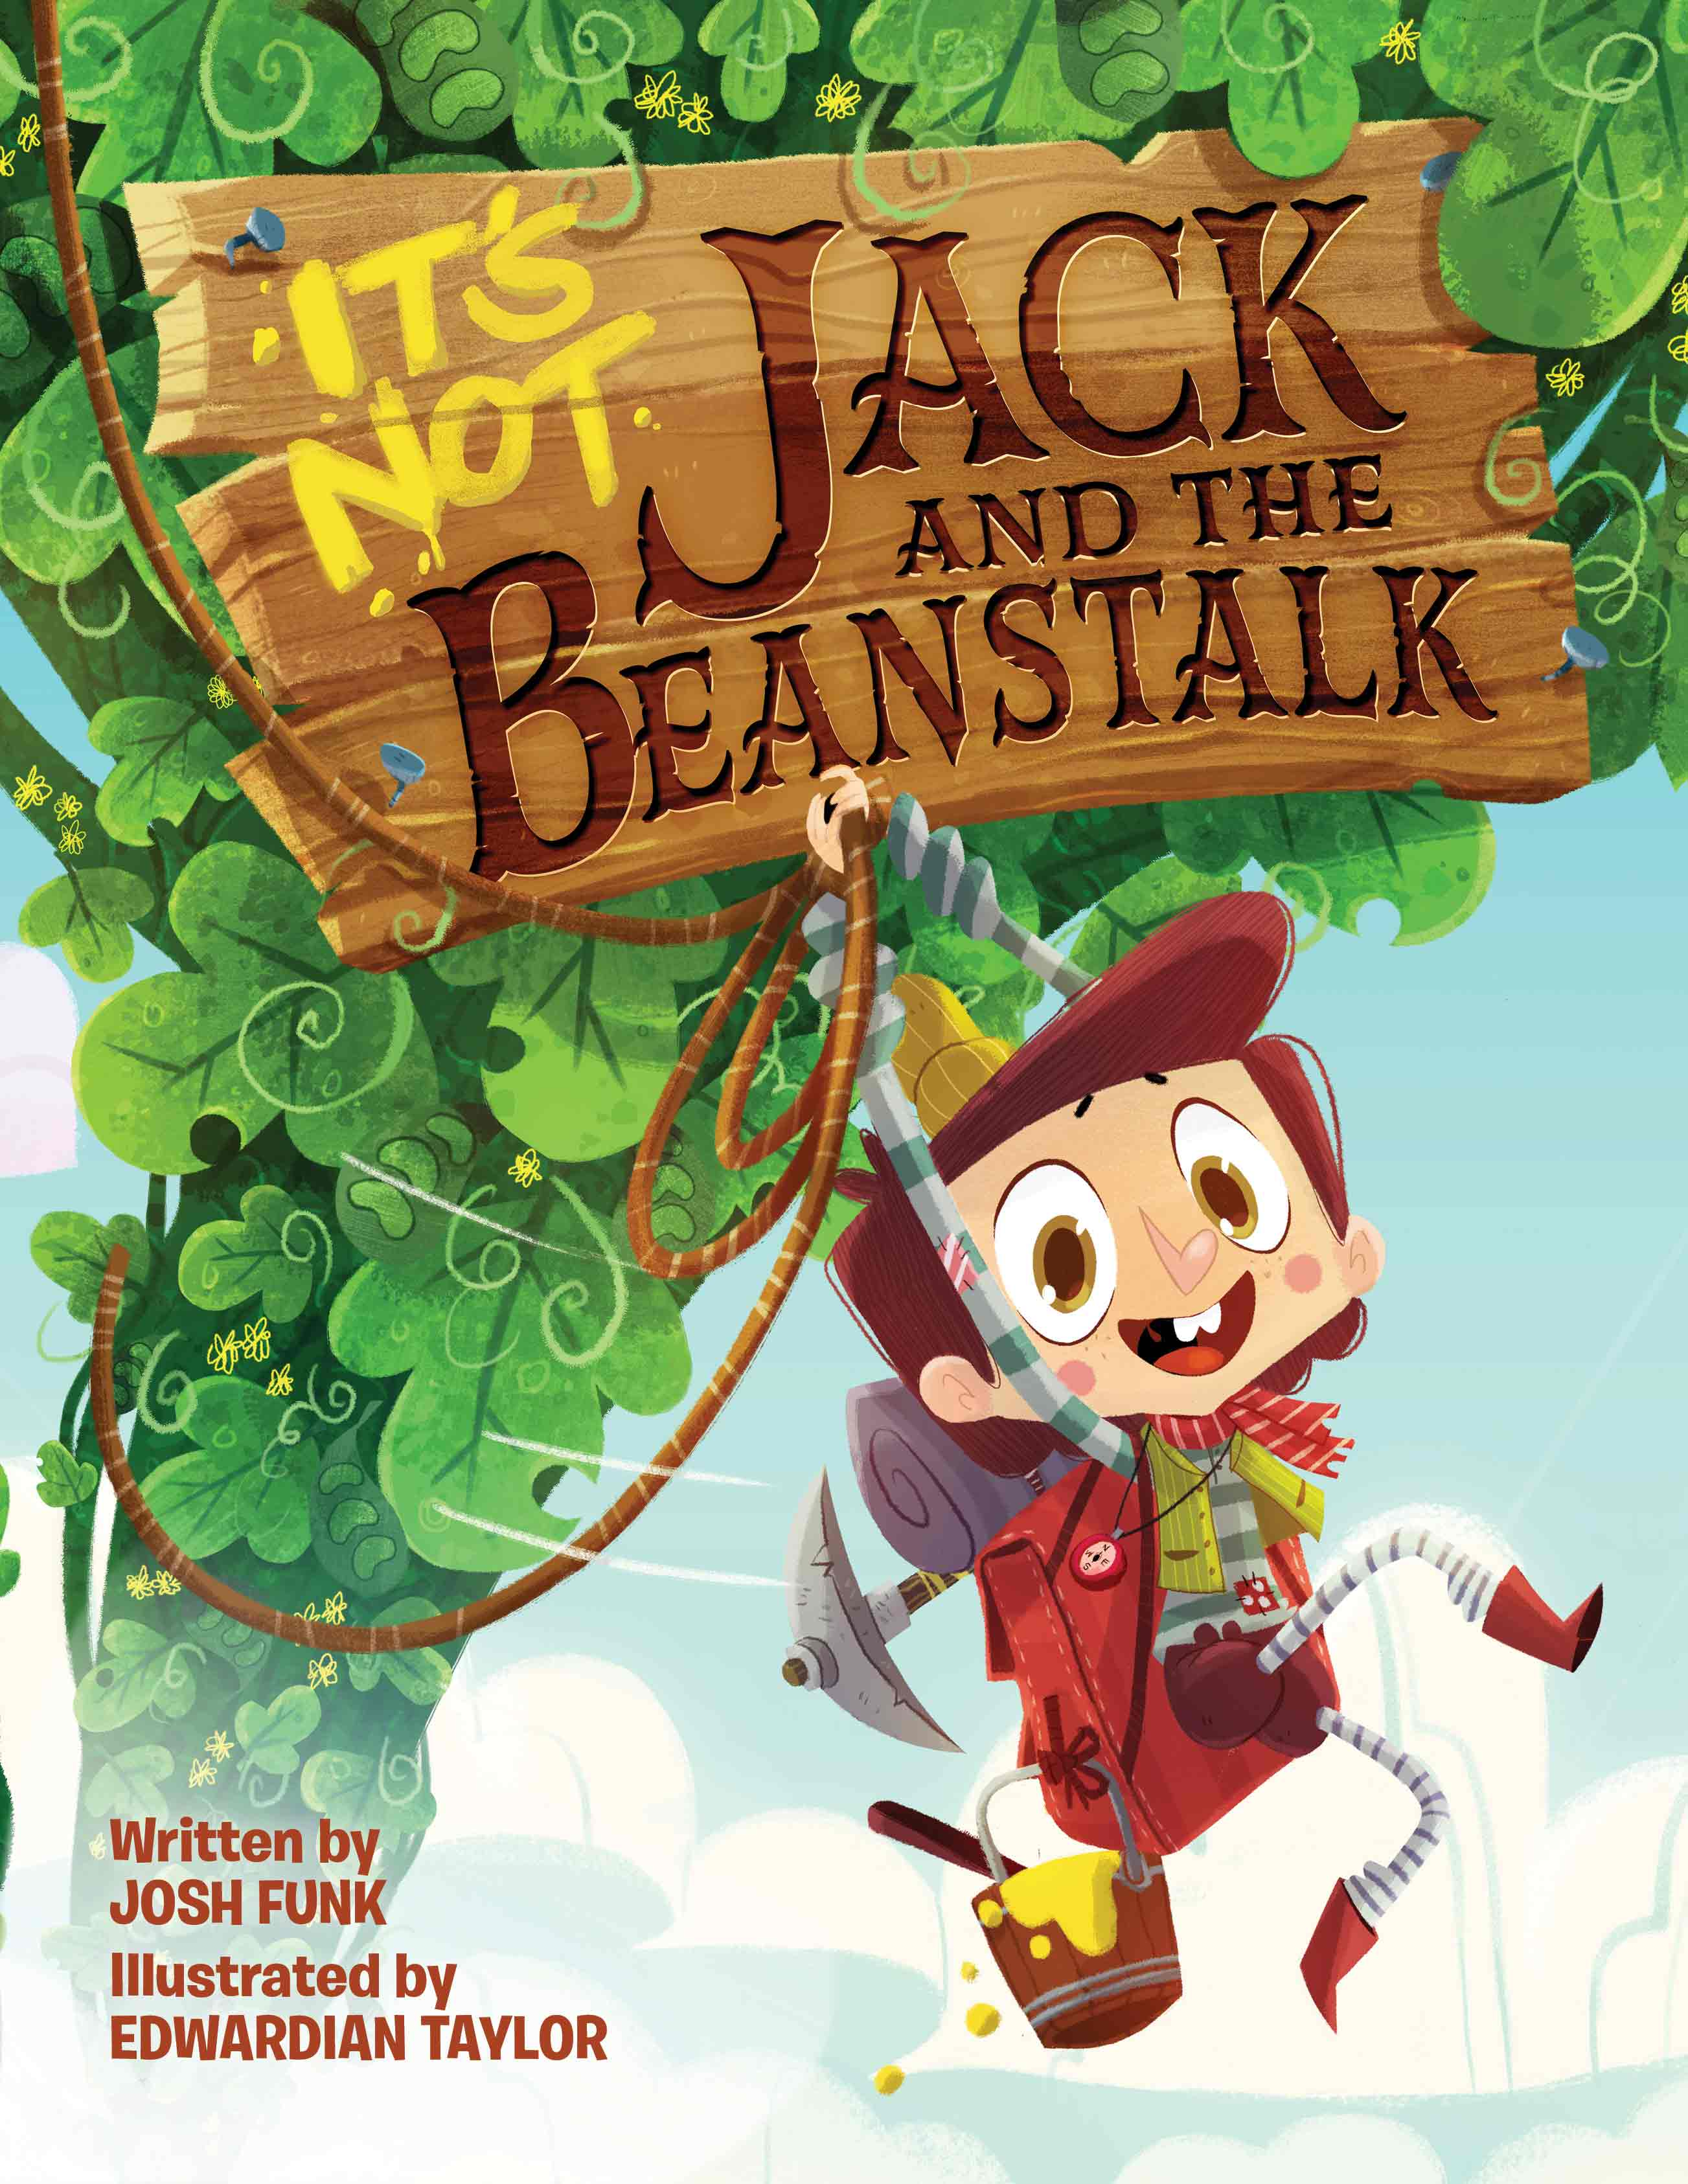 IT'S-NOT-JACK-AND-THE-BEANSTALK-cover